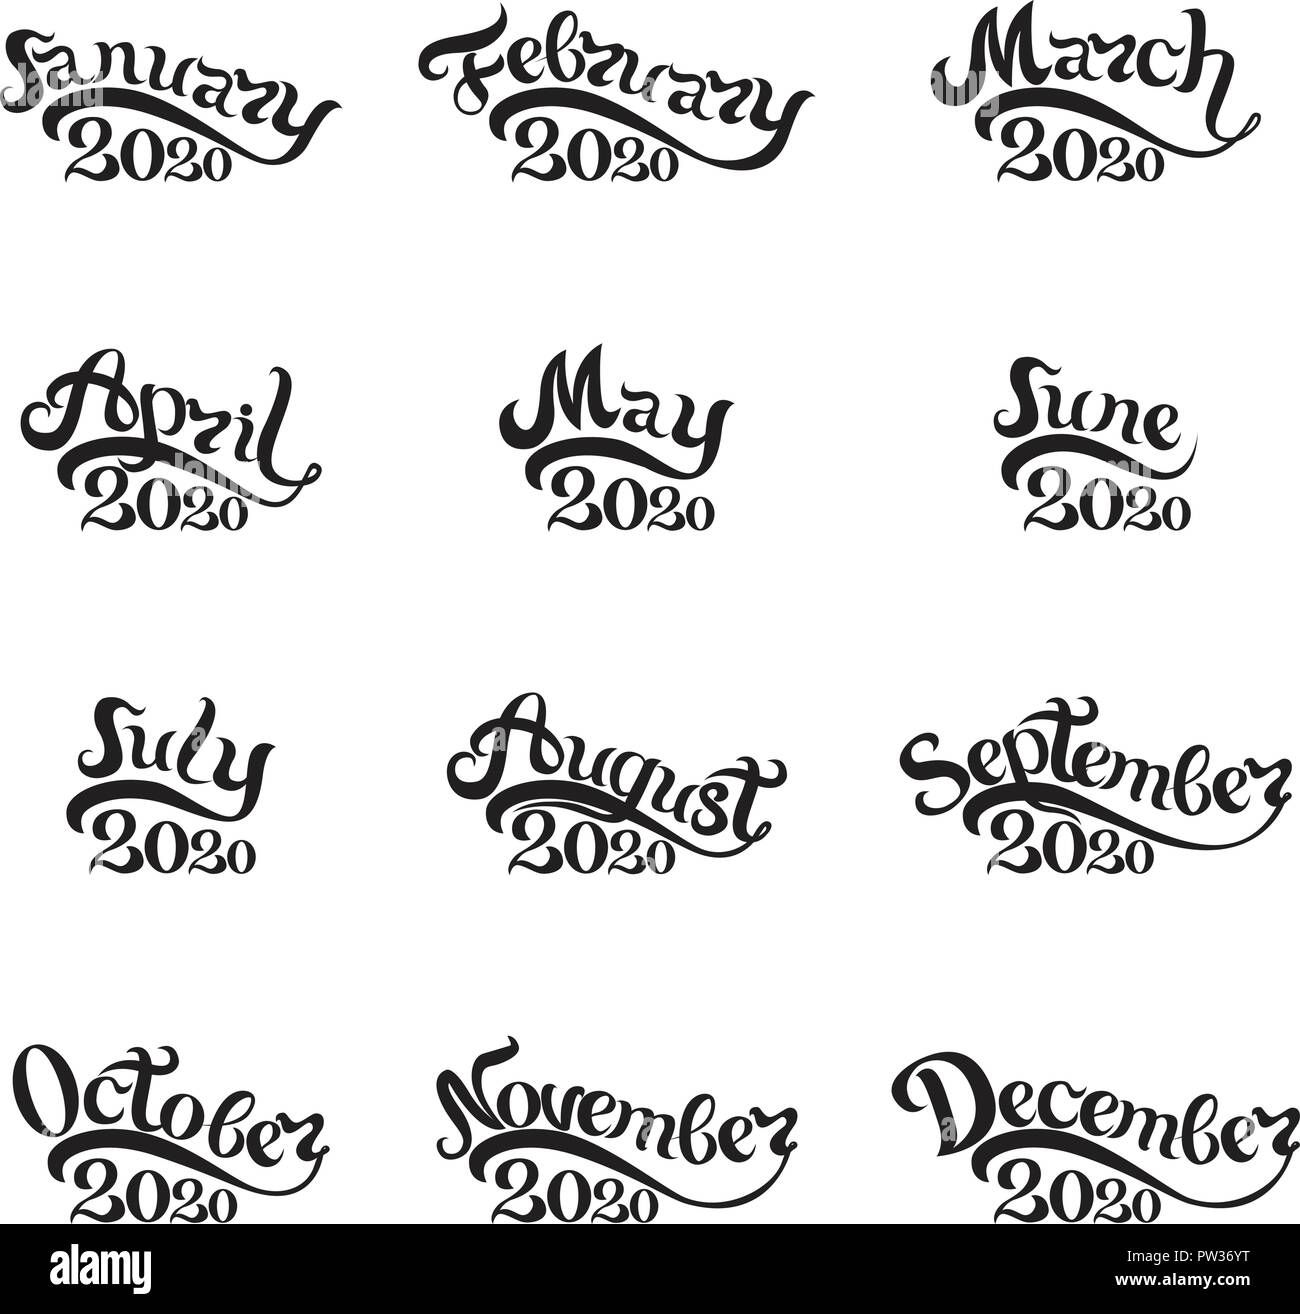 The names of all months 2020 written by hand. Lettering. Beautiful letters on white background. Isolated image for invitations, calendars, t-shirt prints - Stock Image